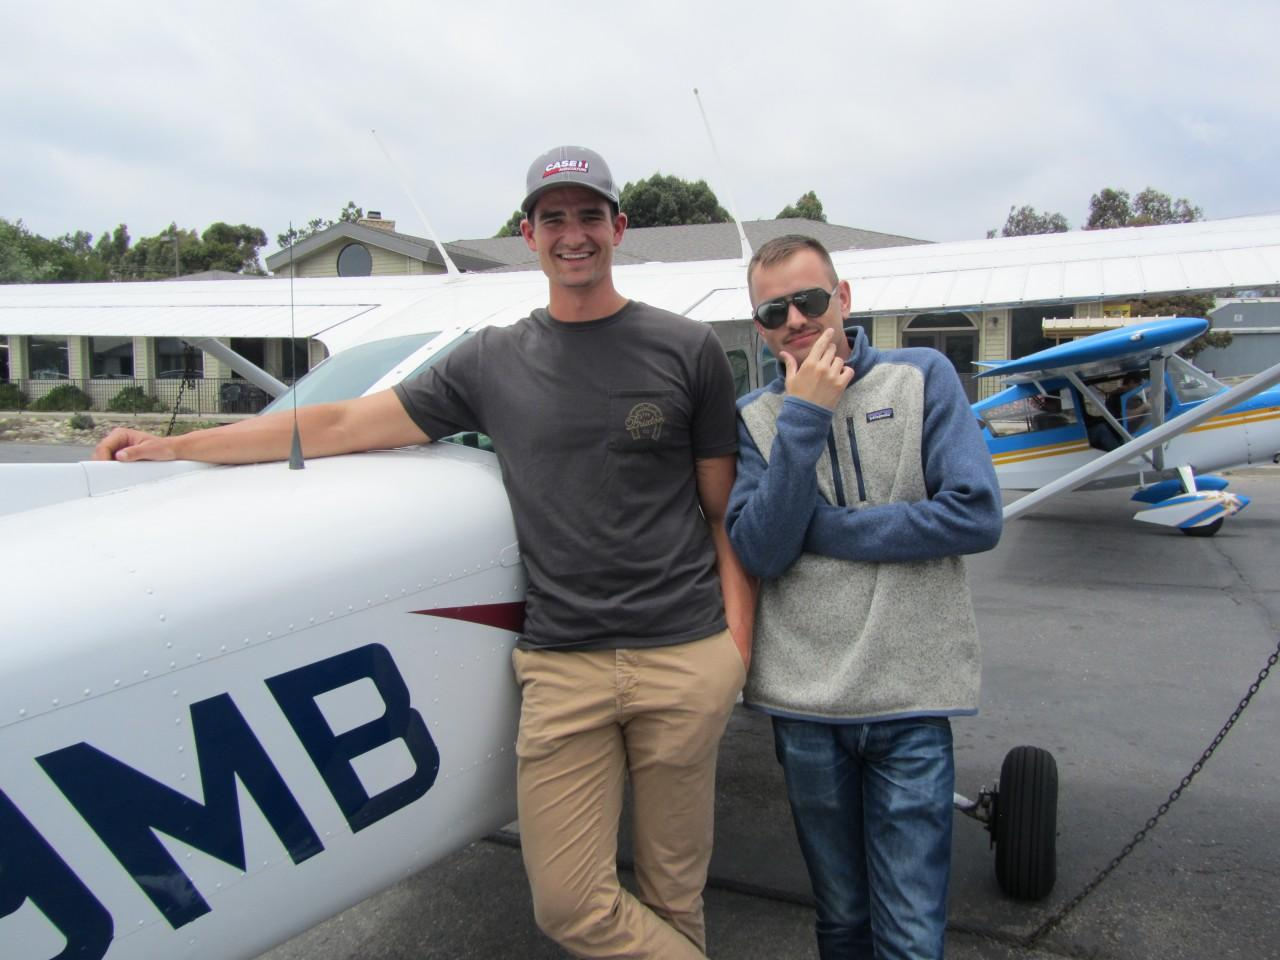 First Solo - Jacob Coert